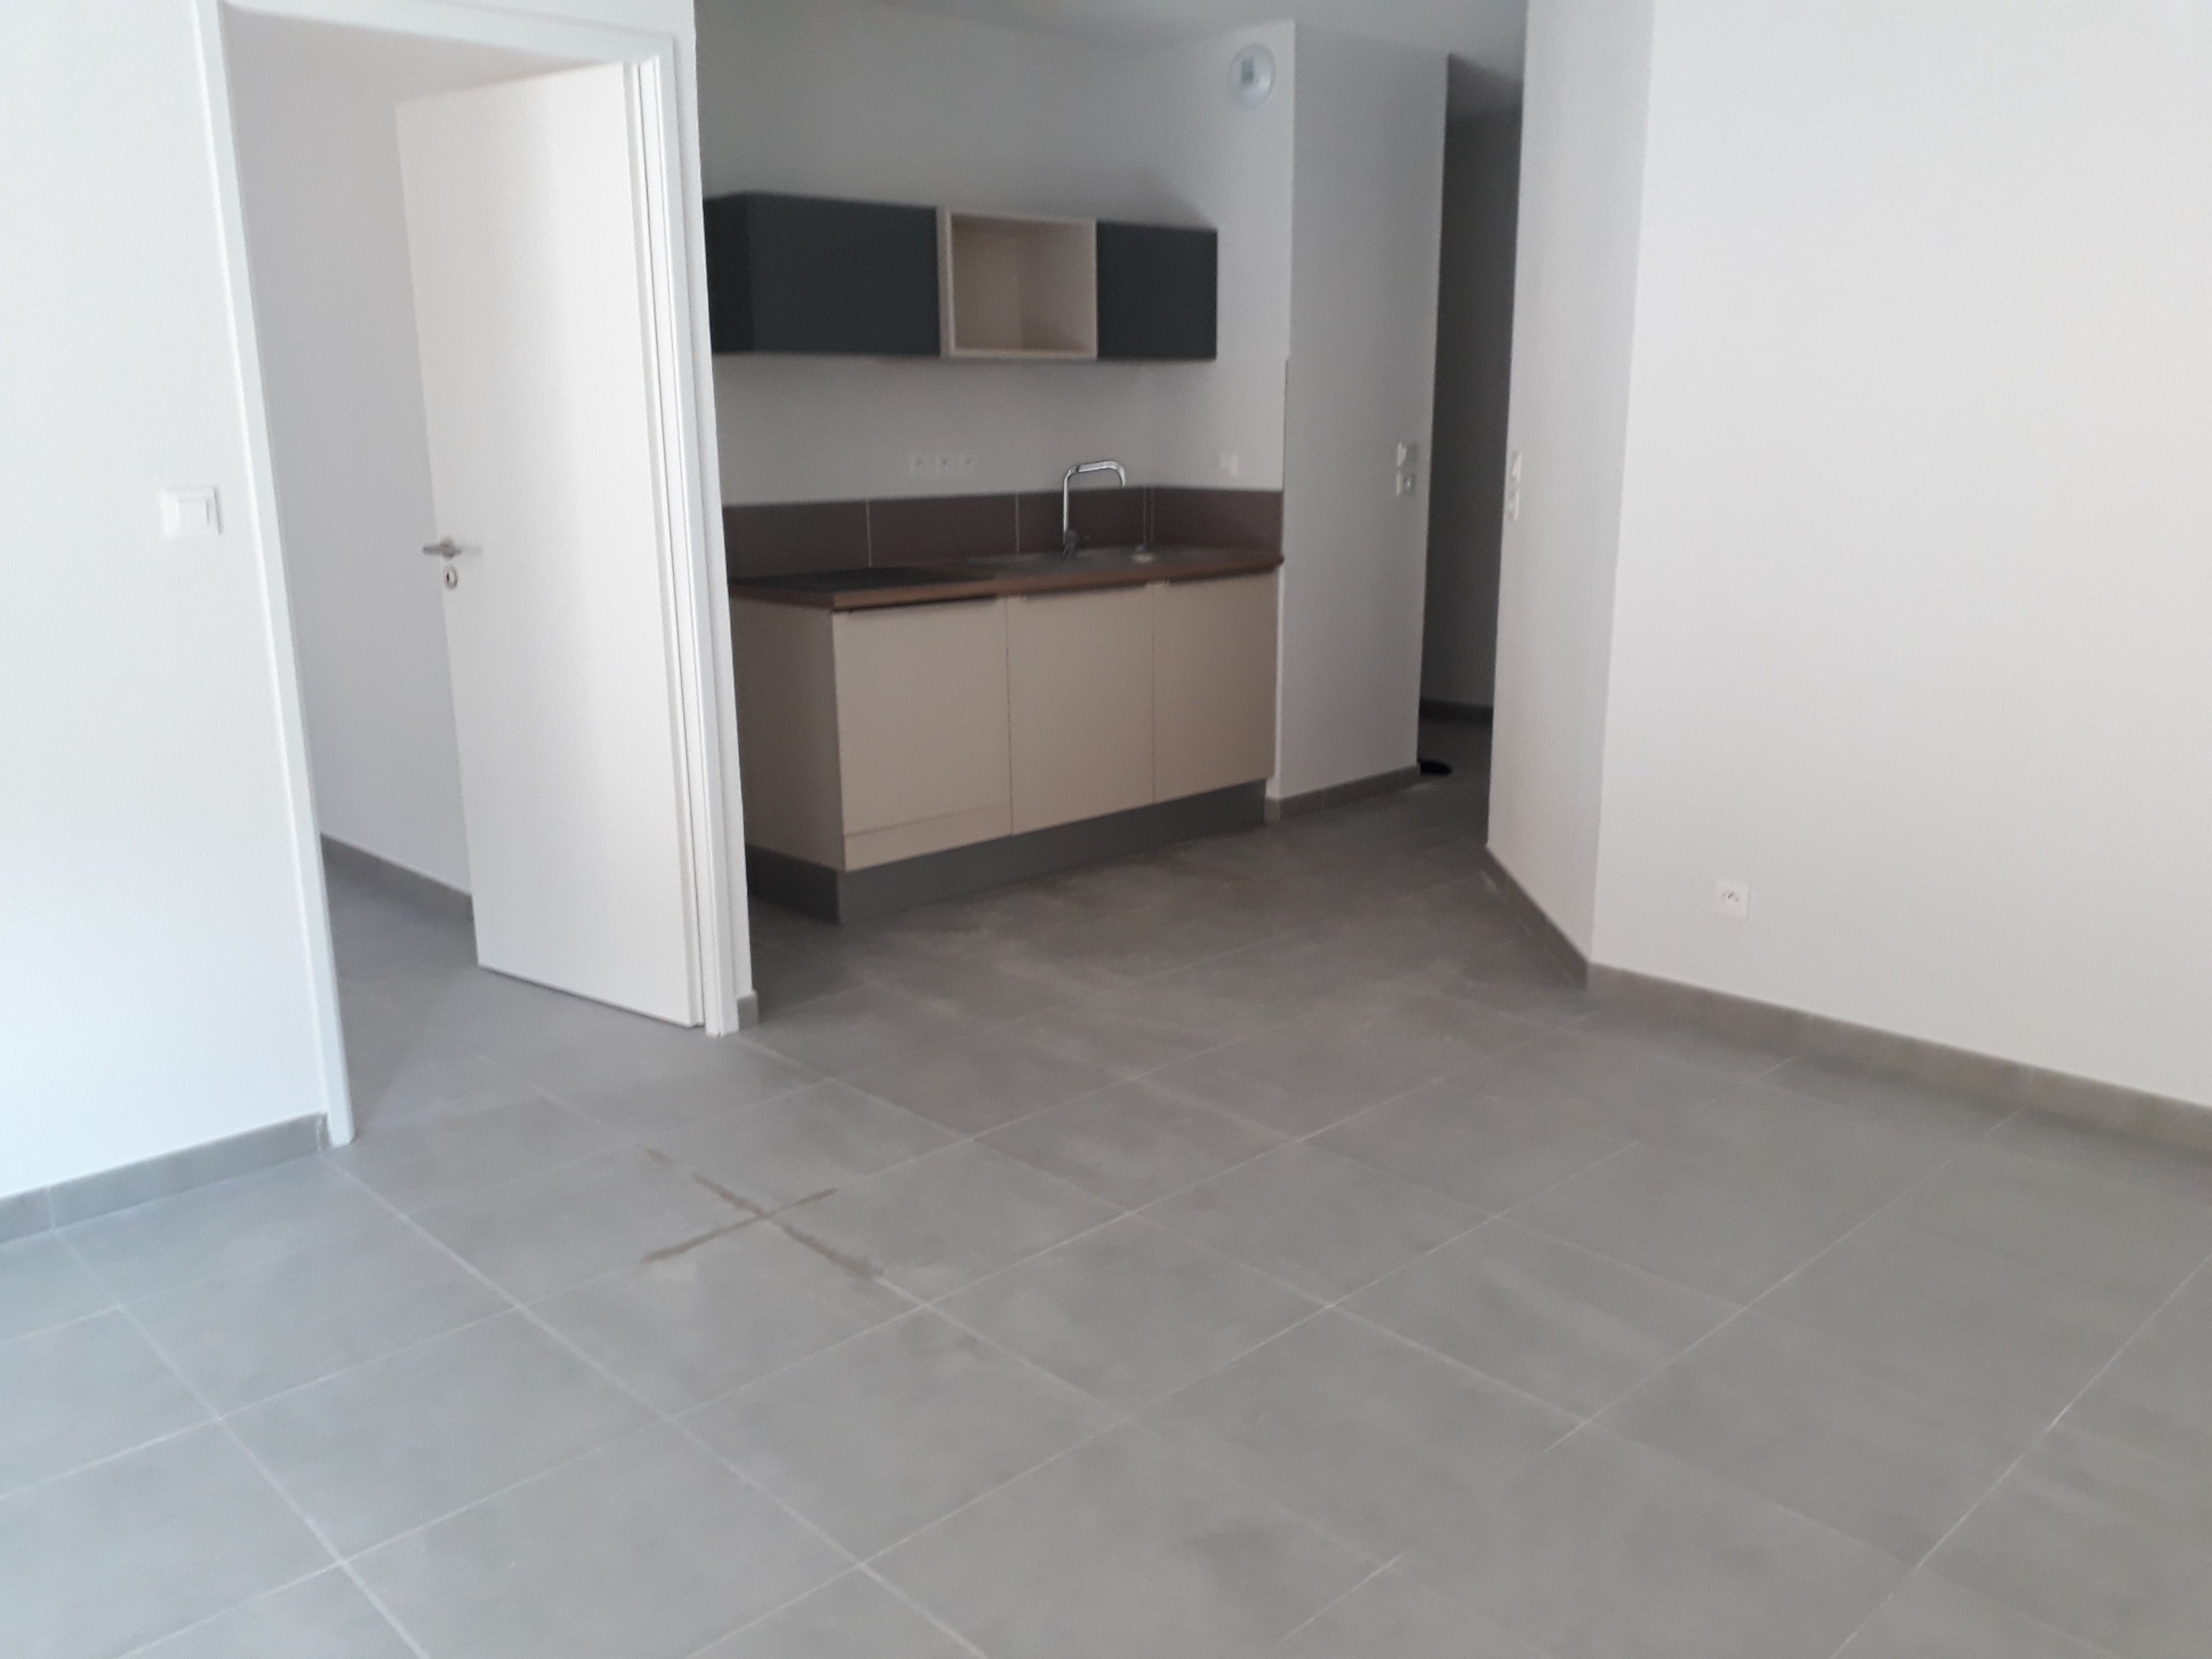 Location appartement à Sète, surface de 51.5m²